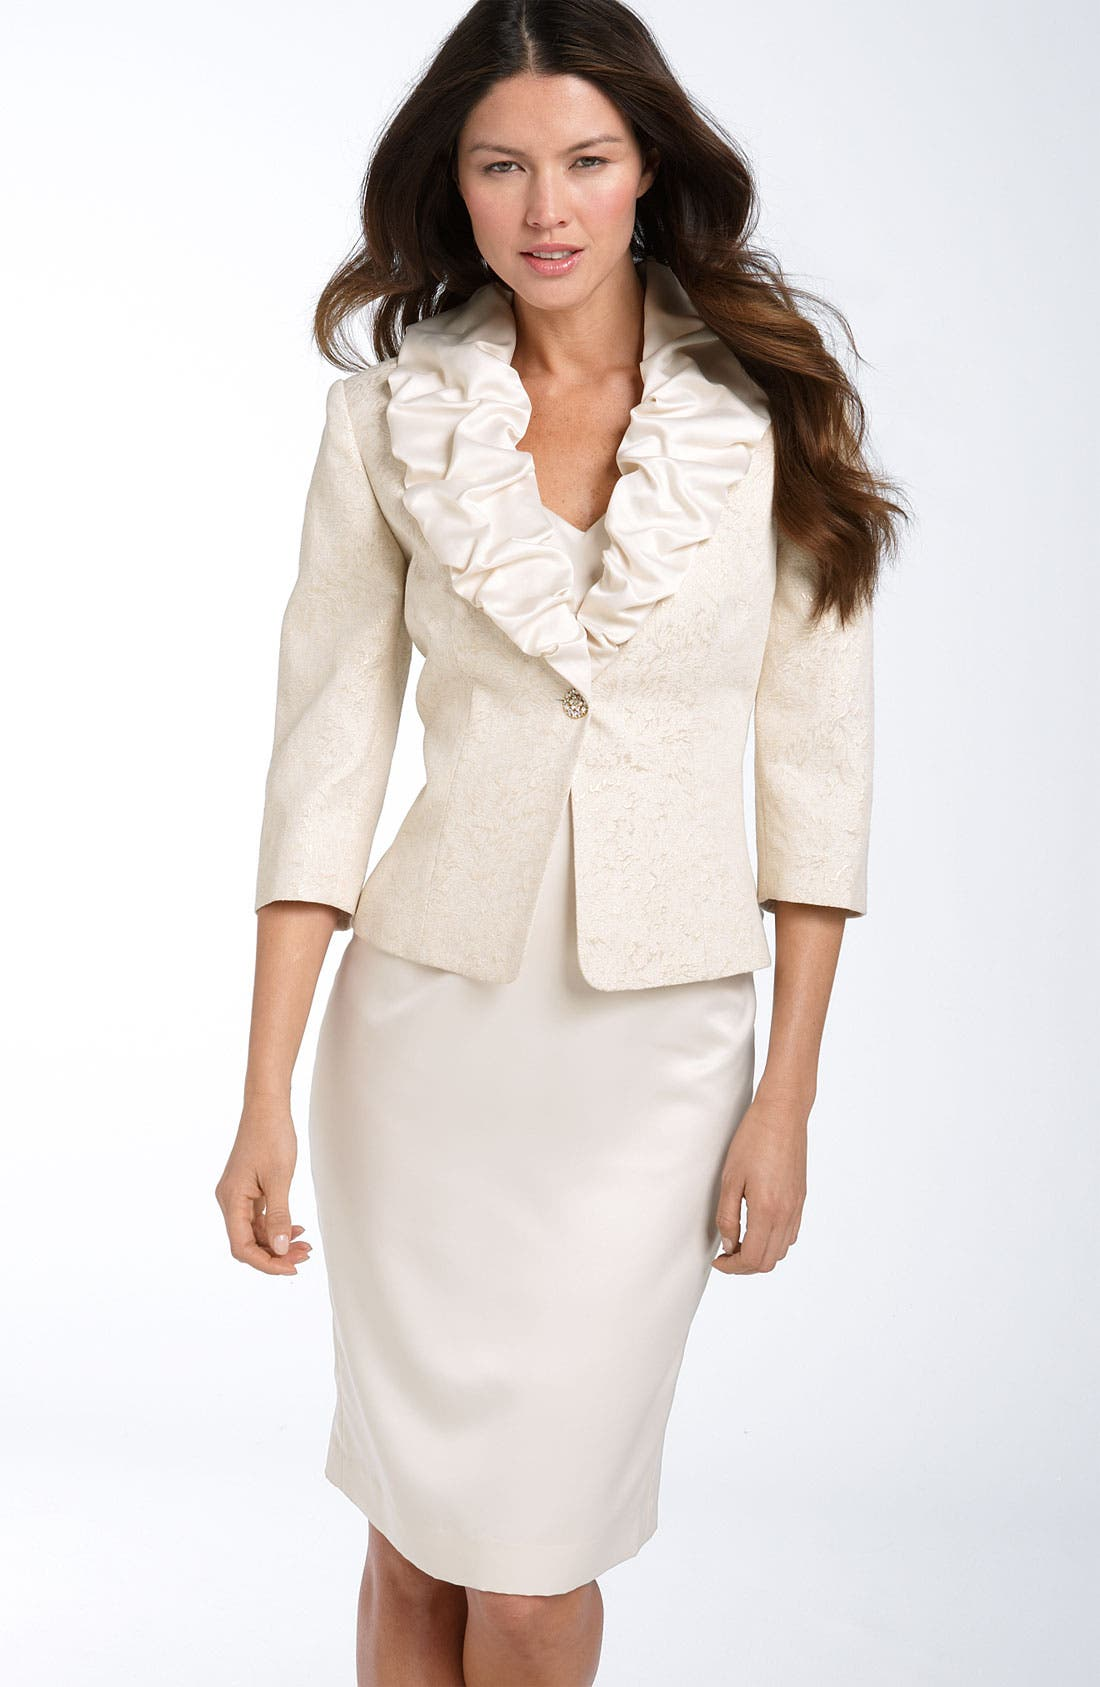 Alternate Image 1 Selected - Adrianna Papell Sheath Dress with Jacquard Jacket